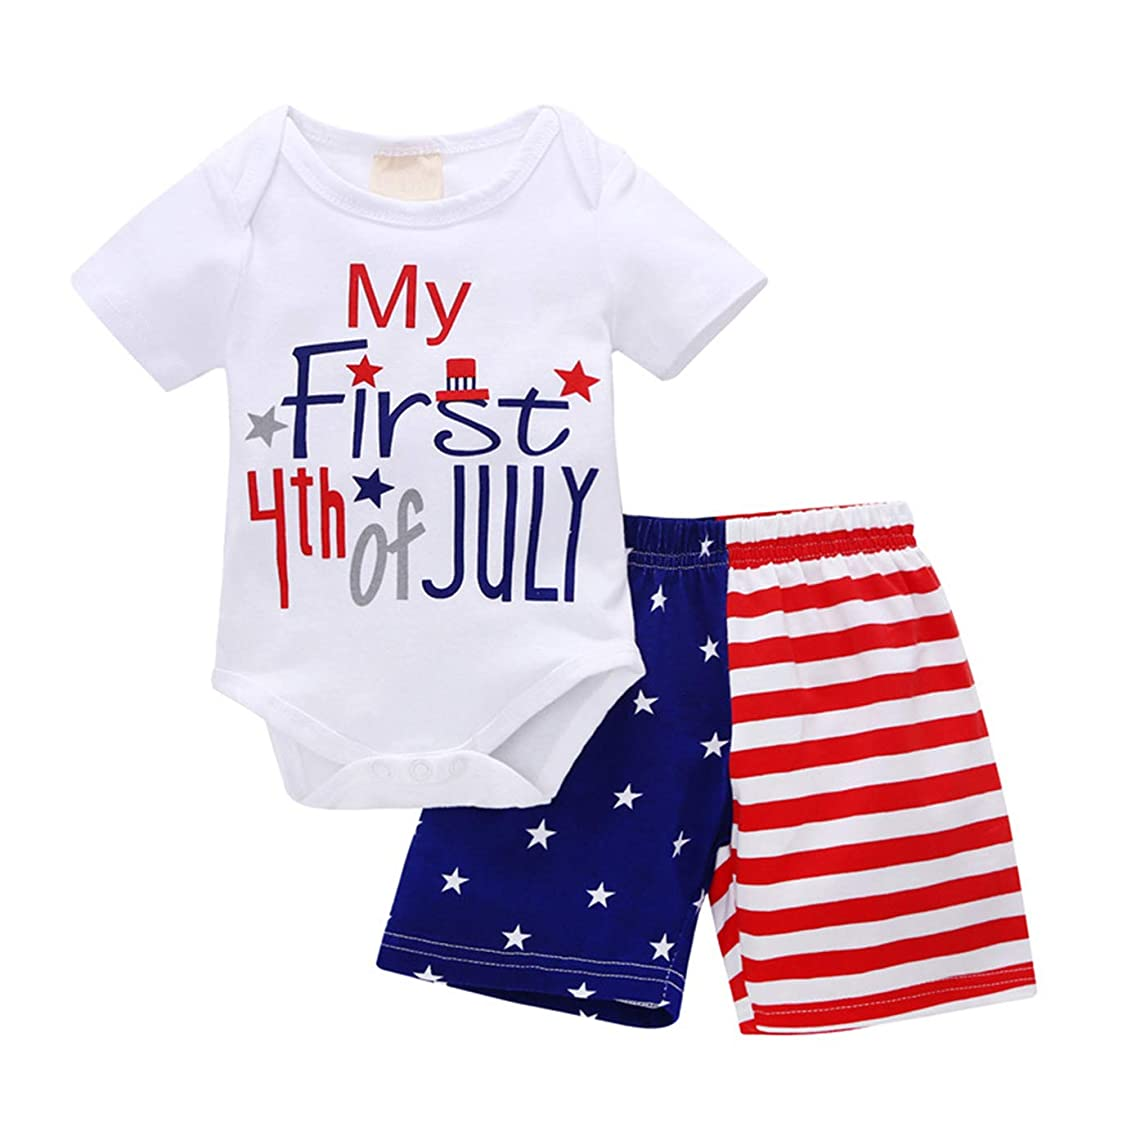 4th?of?July?Baby?Boy Outfit, My First 4th of July Romper USA Flag Shorts, Toddler Patriotic Infant Clothes Set